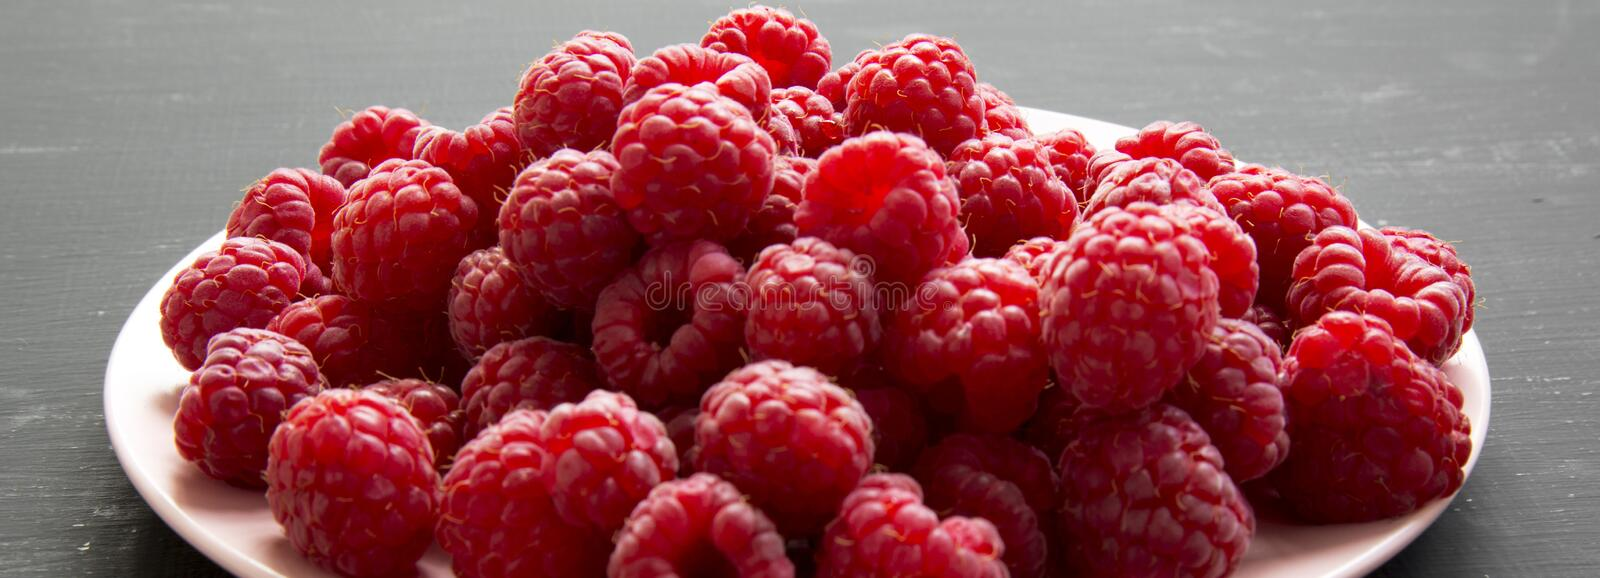 Fresh organic raspberry on a pink plate on black surface, side view. Close-up royalty free stock photography